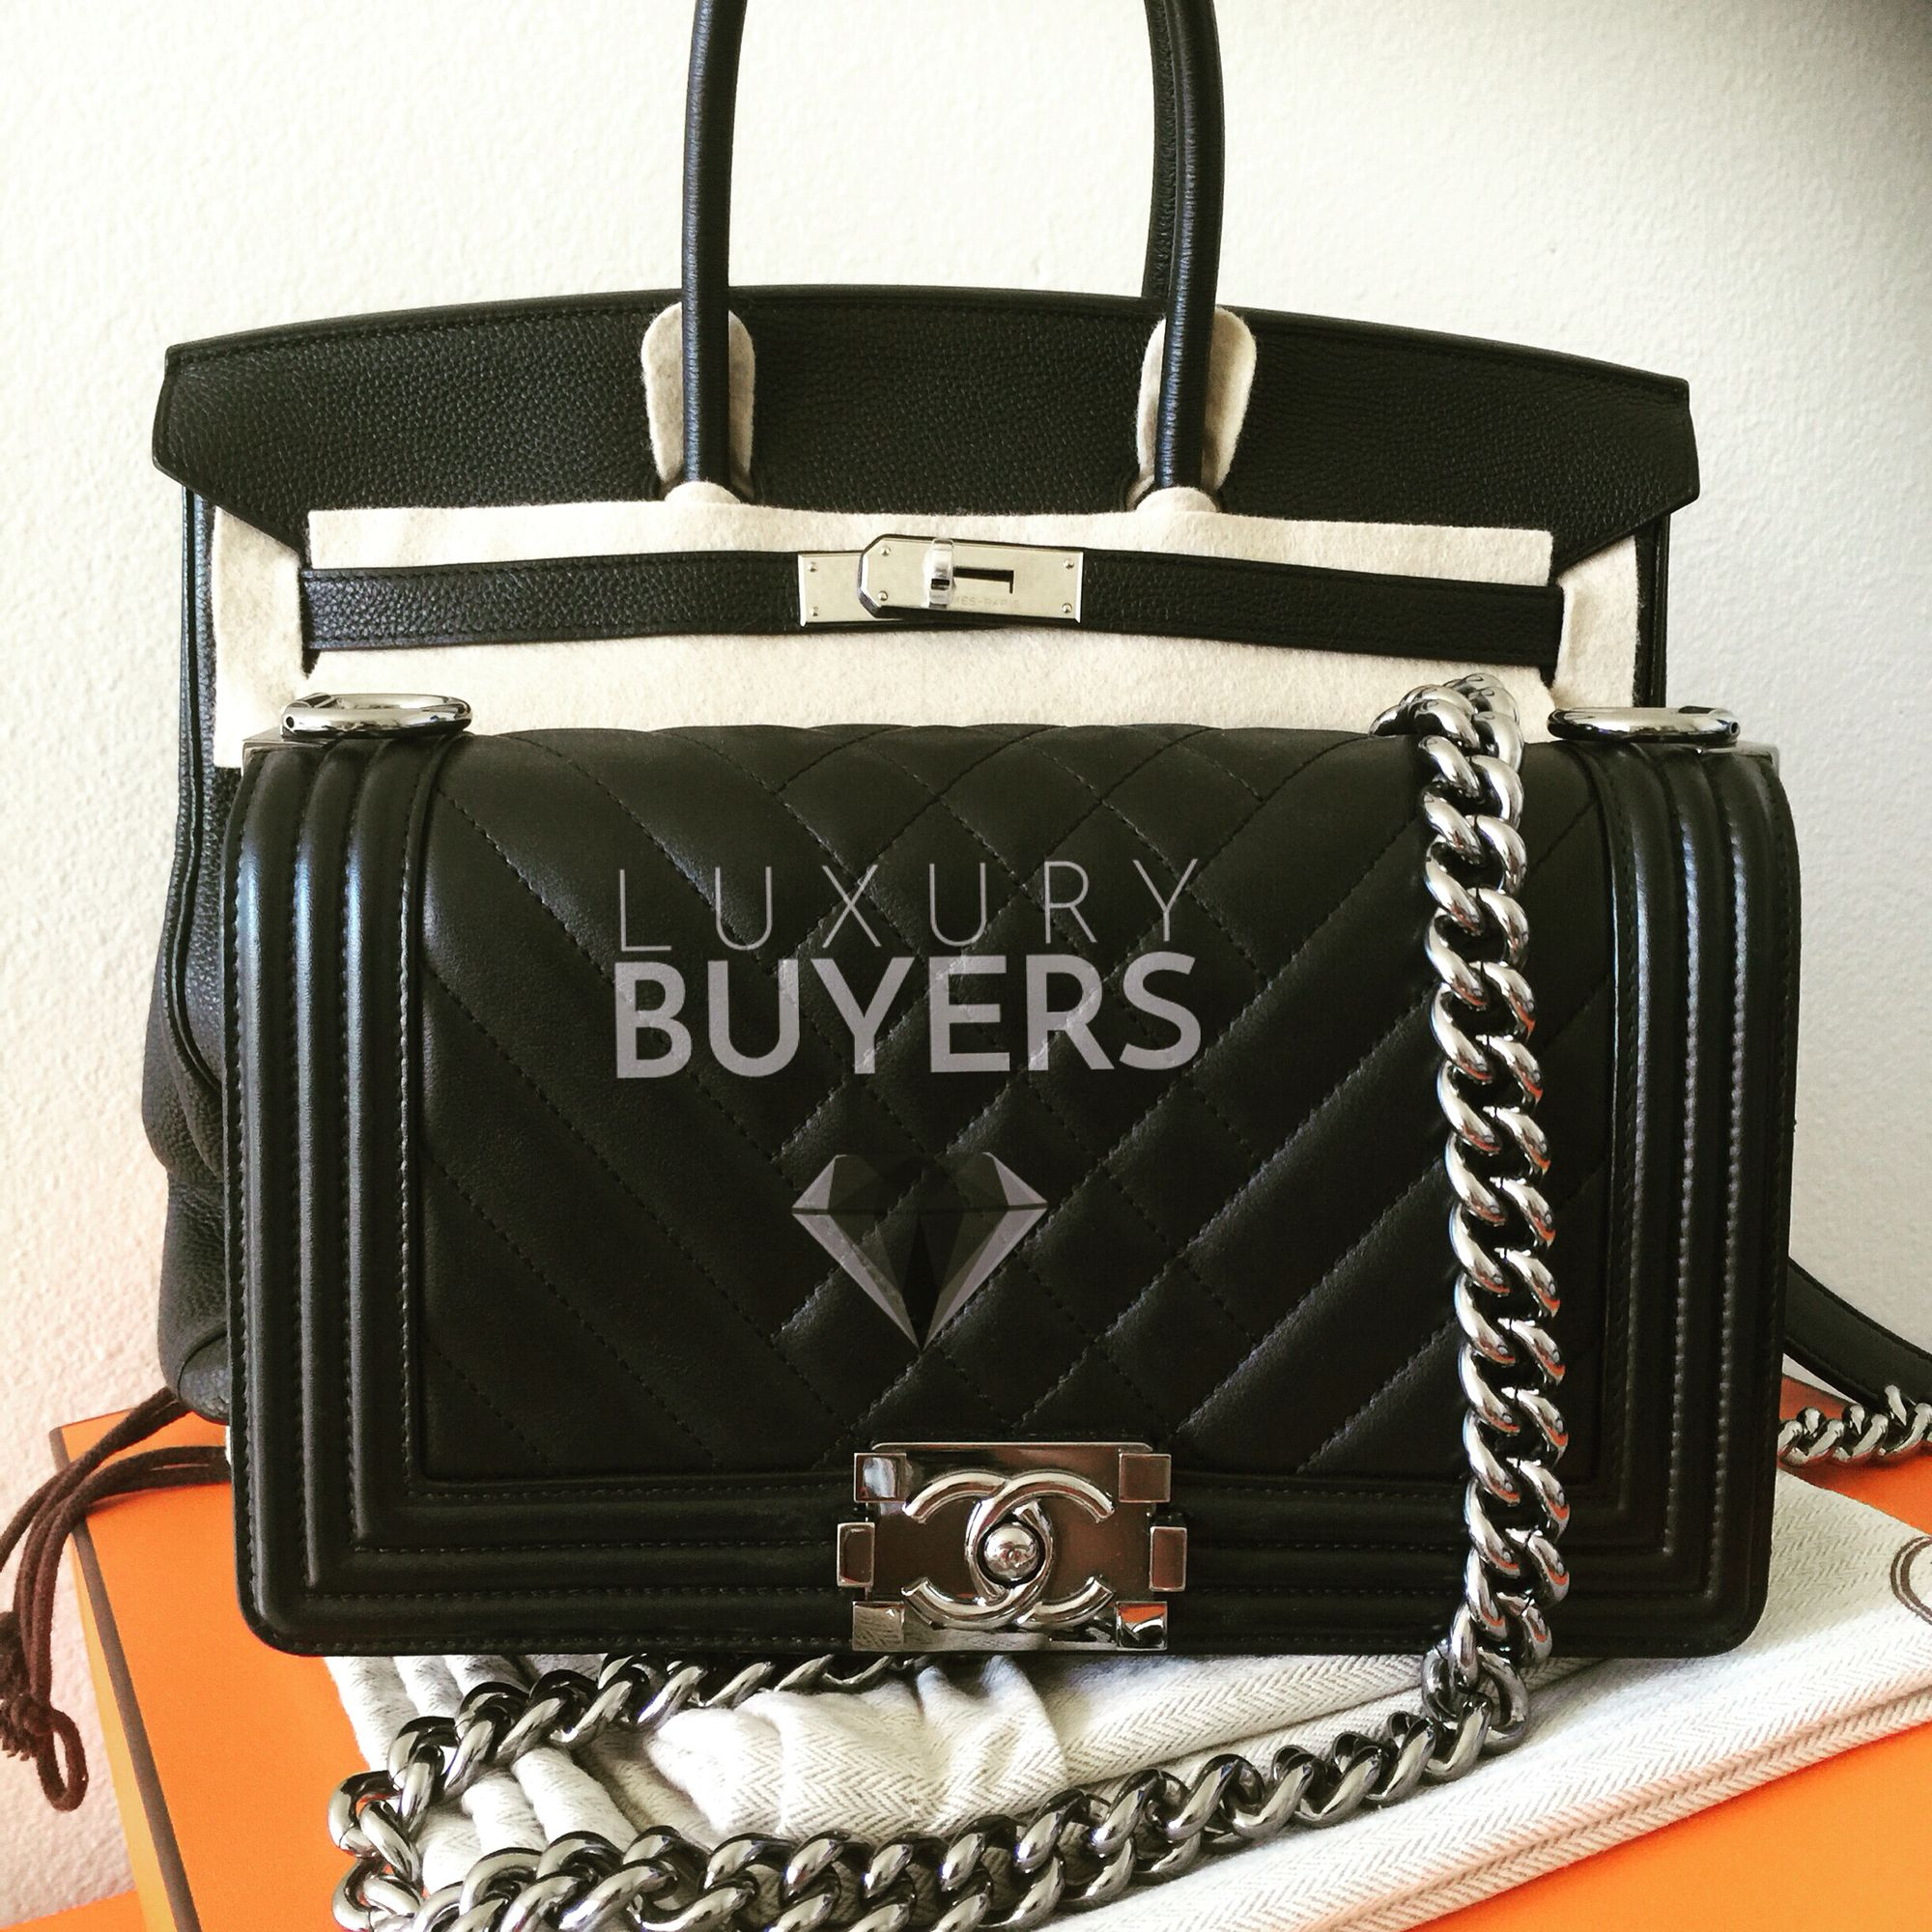 Get Top Dollar For Chanel bags and Hermes Birkin Bags. www.LuxuryBuyers.com dbebdc89eb